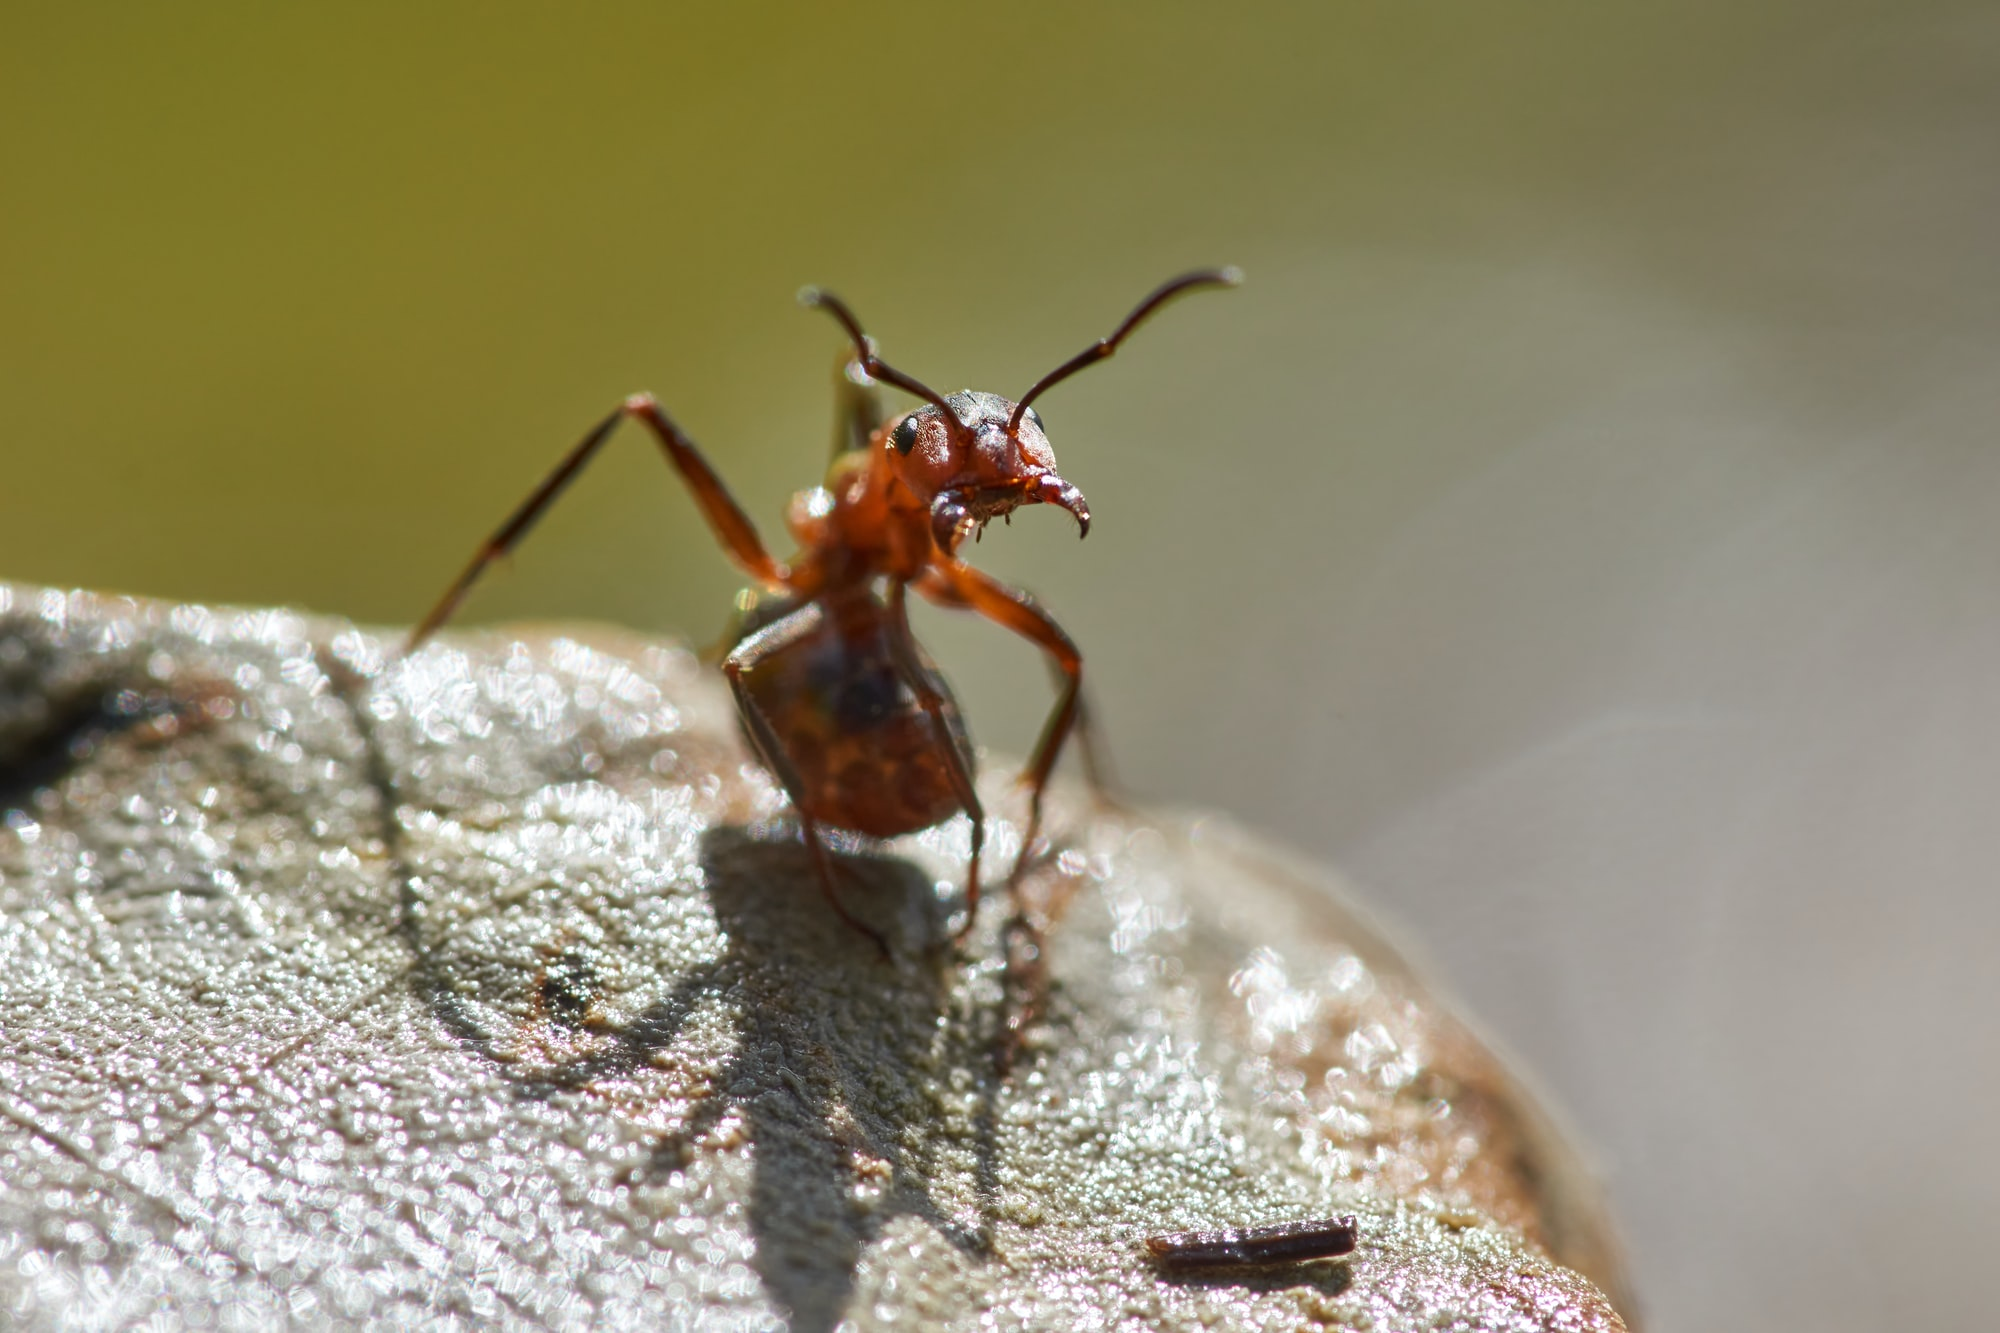 In an ant colony there are always some the watch and defend the others